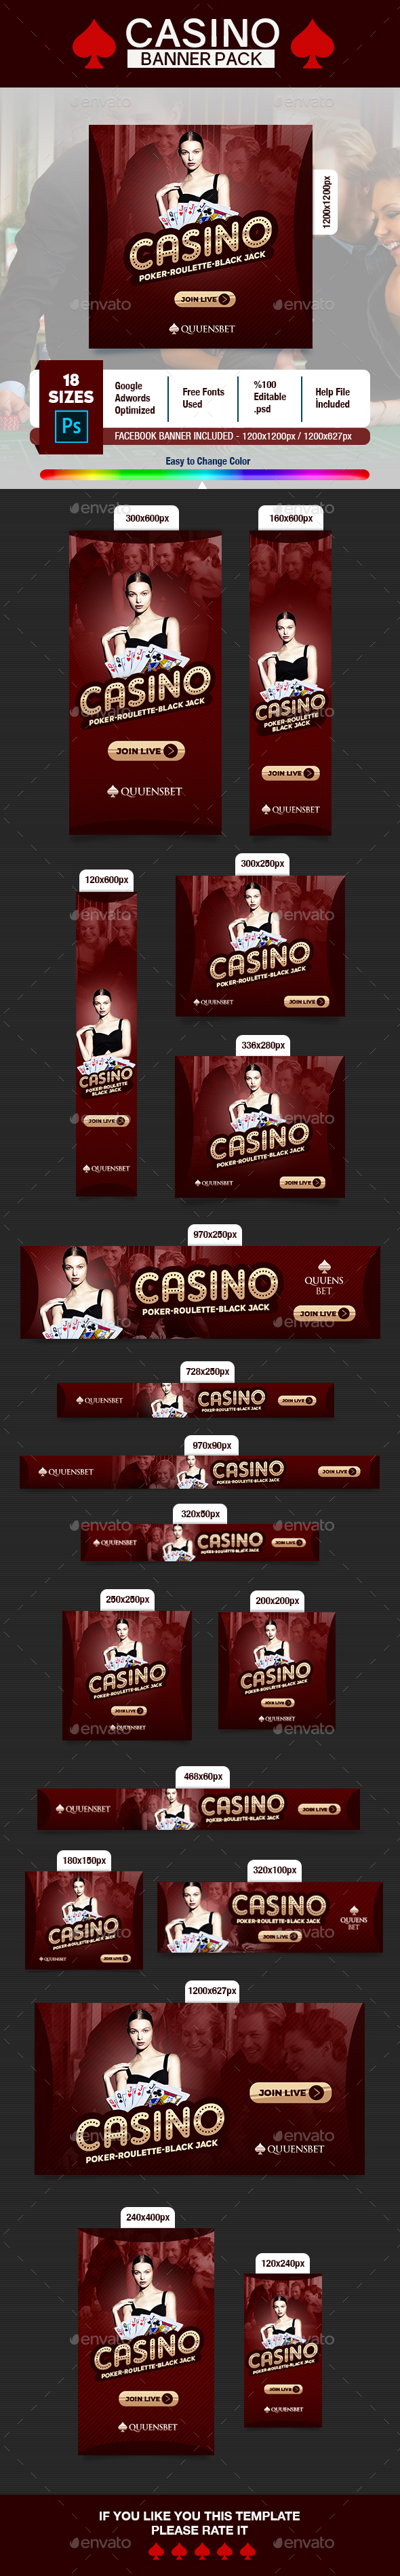 Casino Banner - Banners & Ads Web Elements